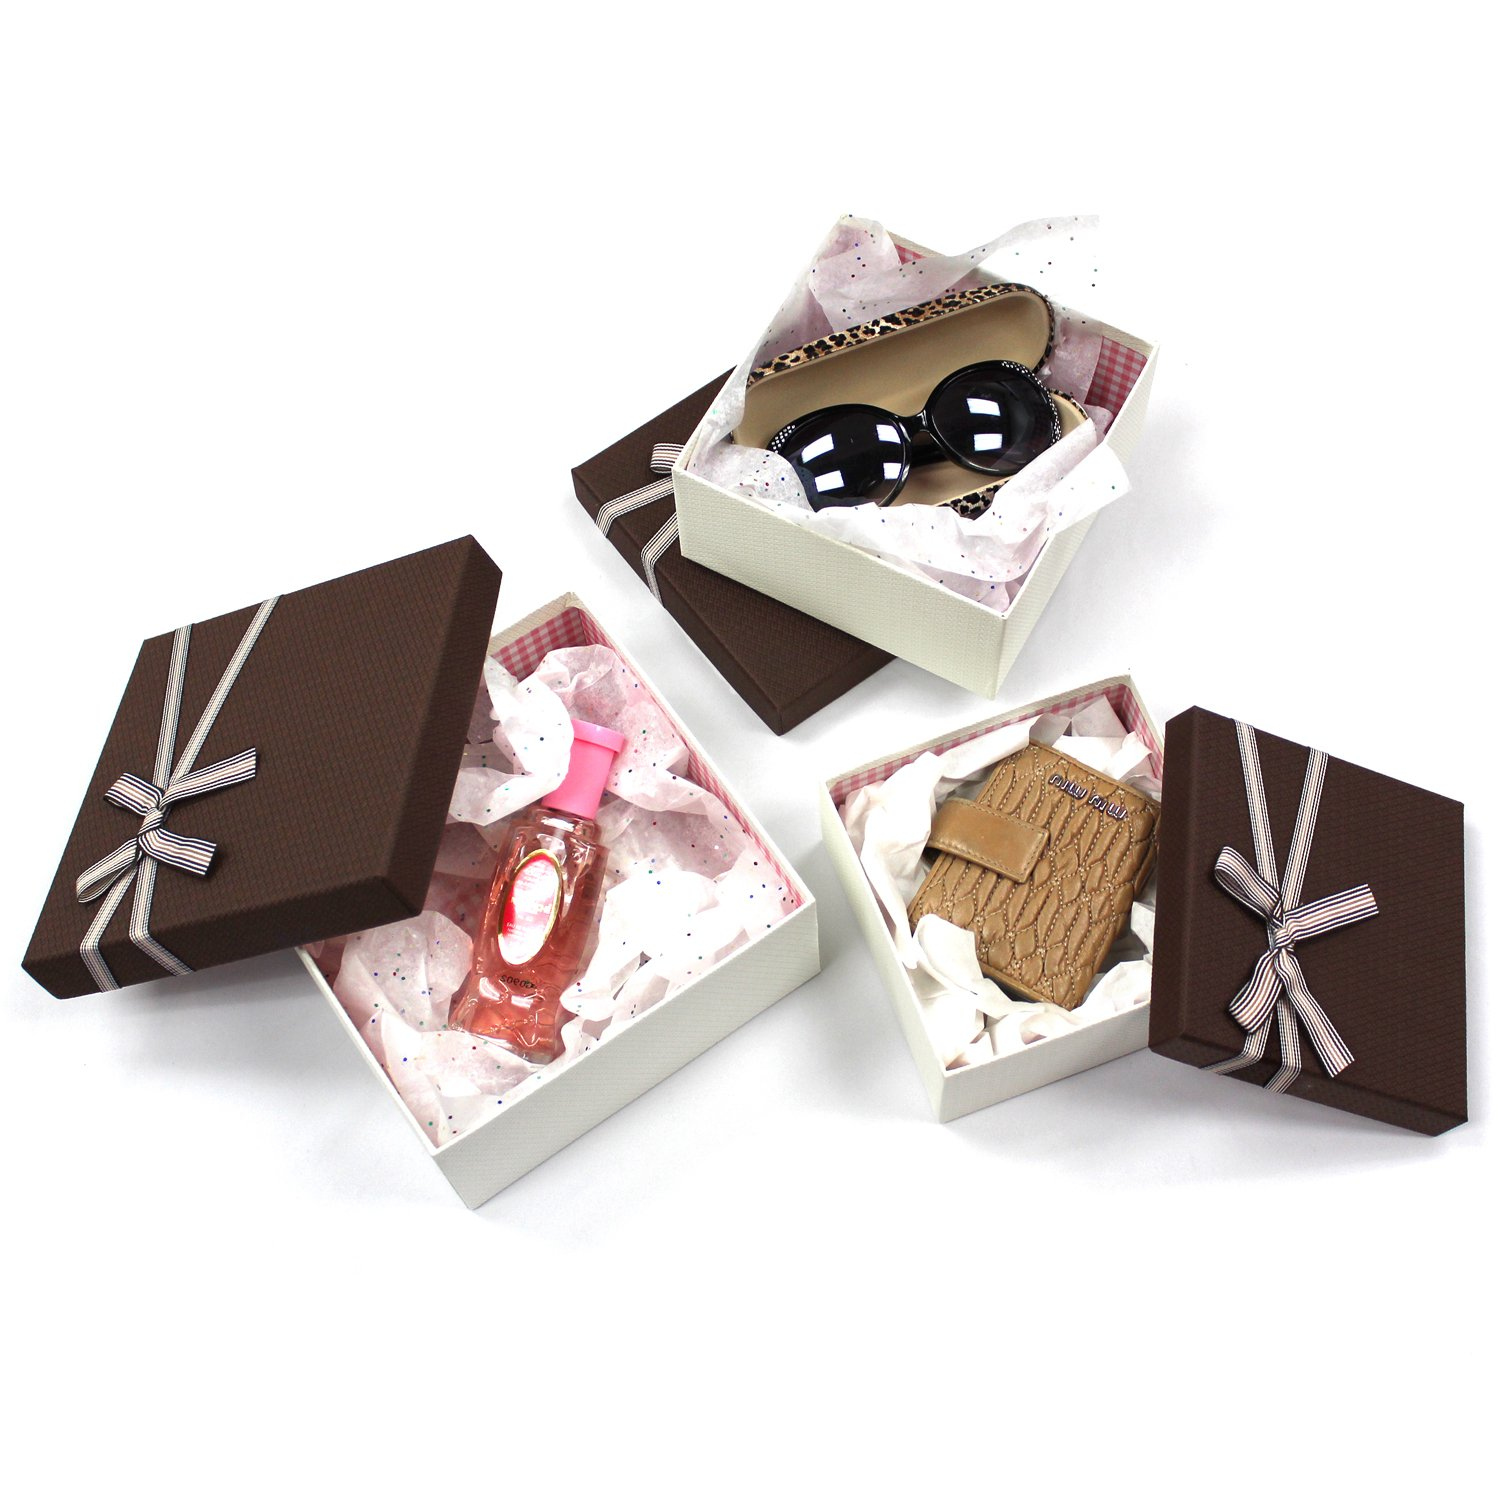 Square Nesting Gift Boxes, A Set of 3,Brown Color with A Bowtie by Ikee Design (Image #5)